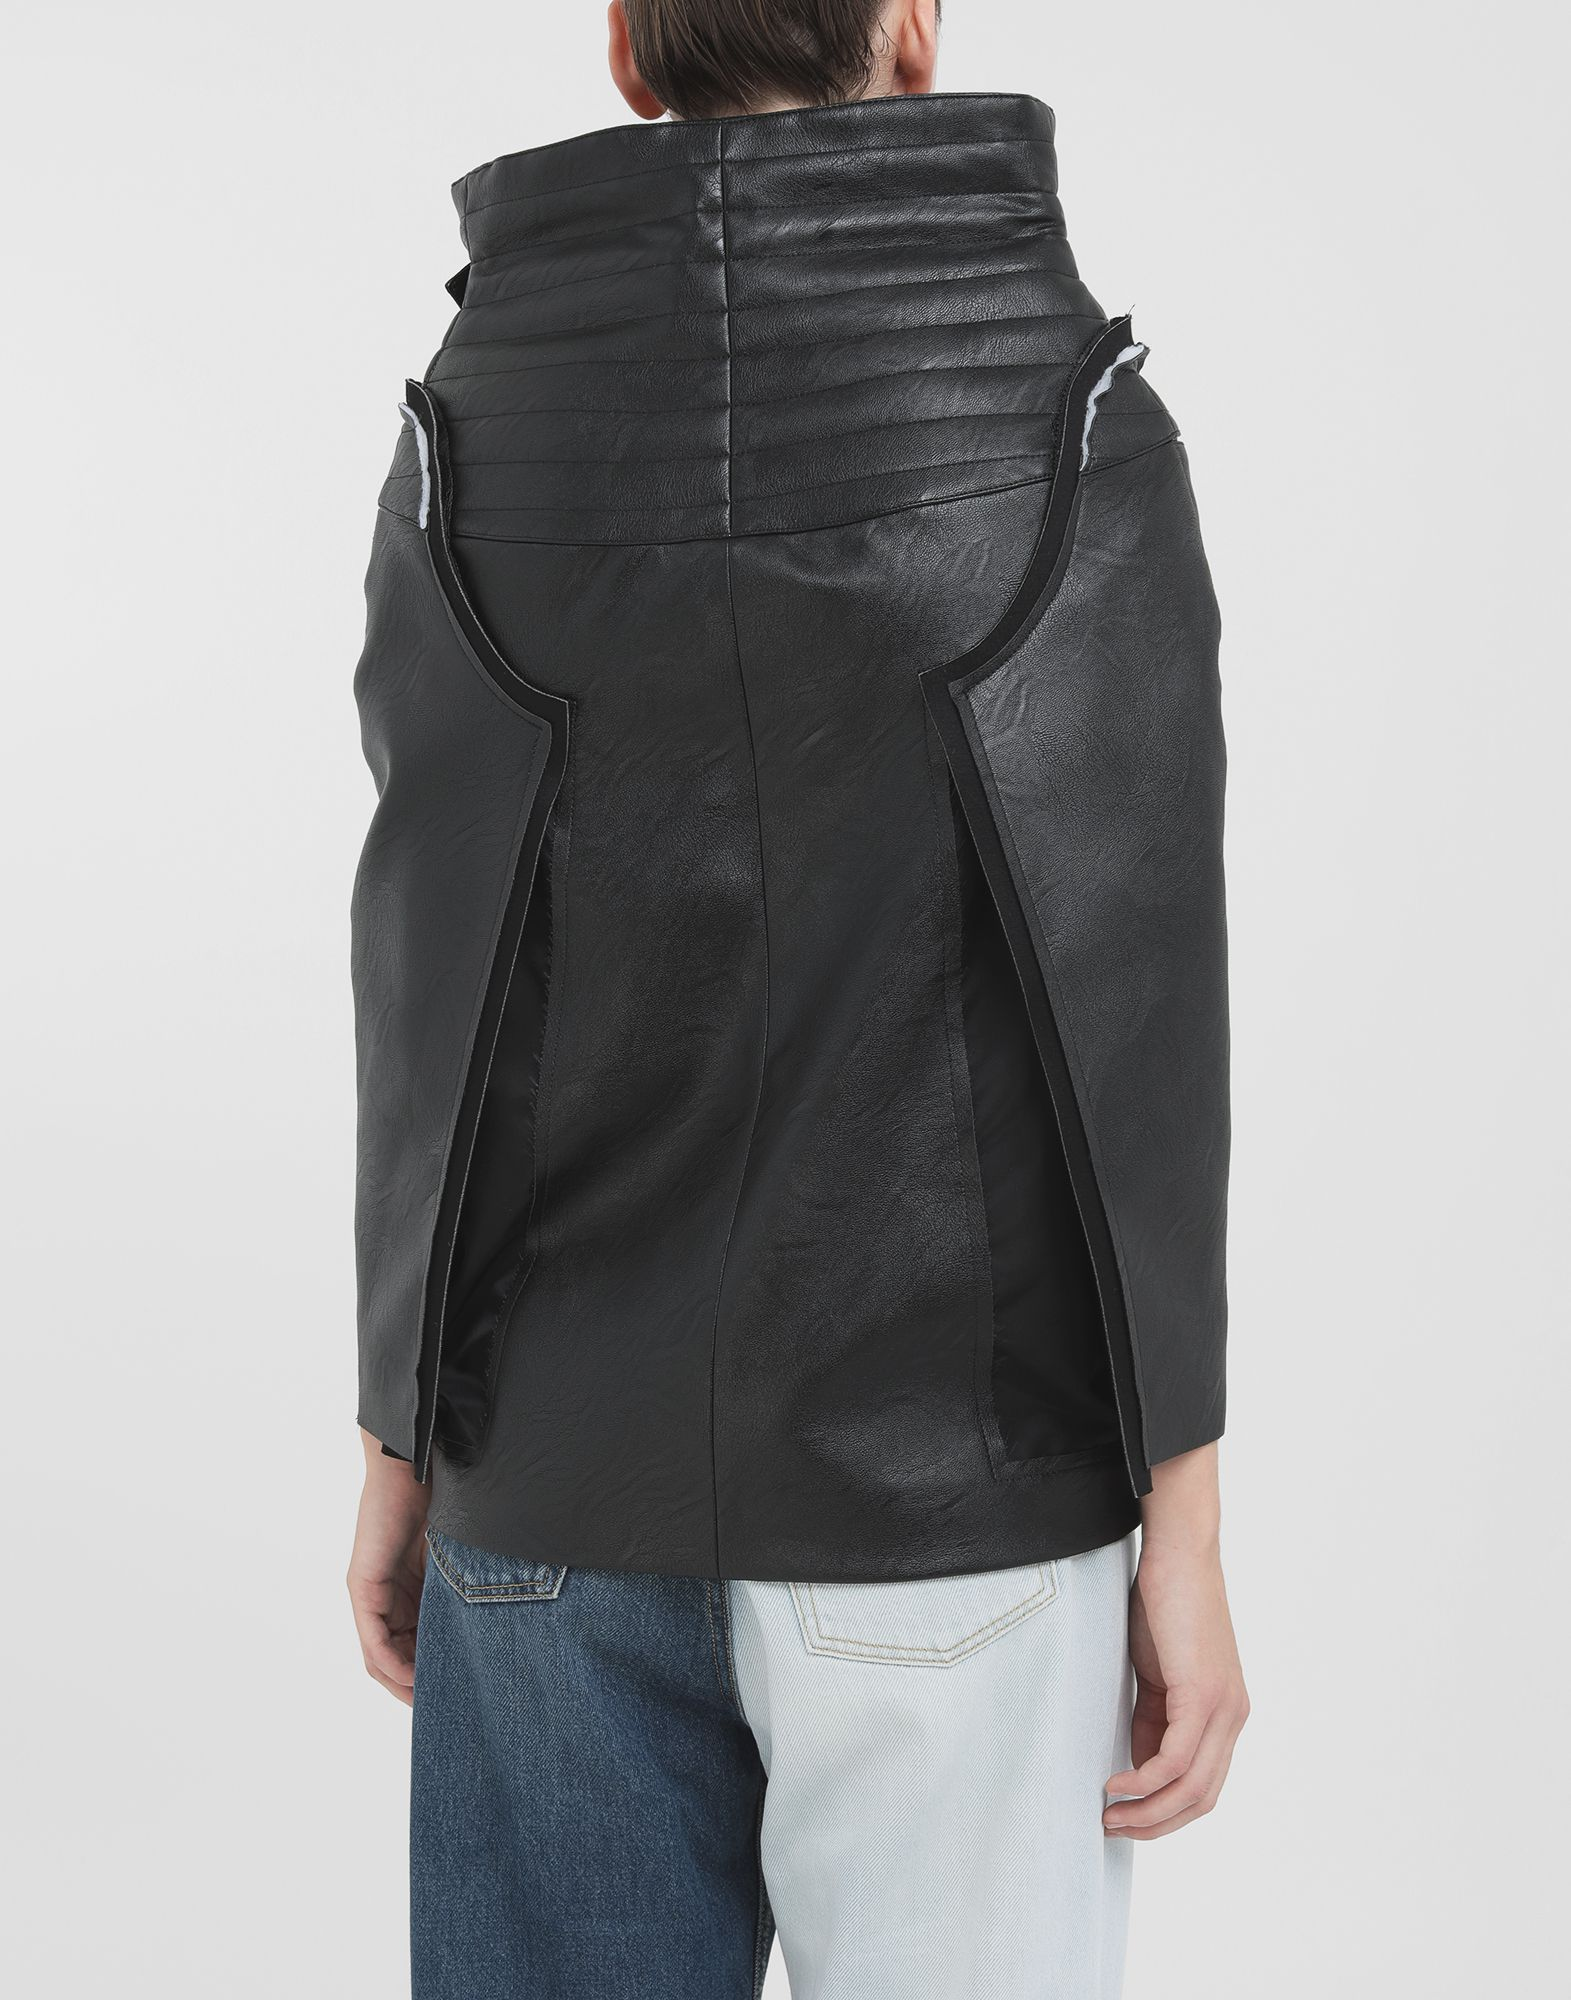 MAISON MARGIELA Décortiqué faux leather jacket Blazer Woman e